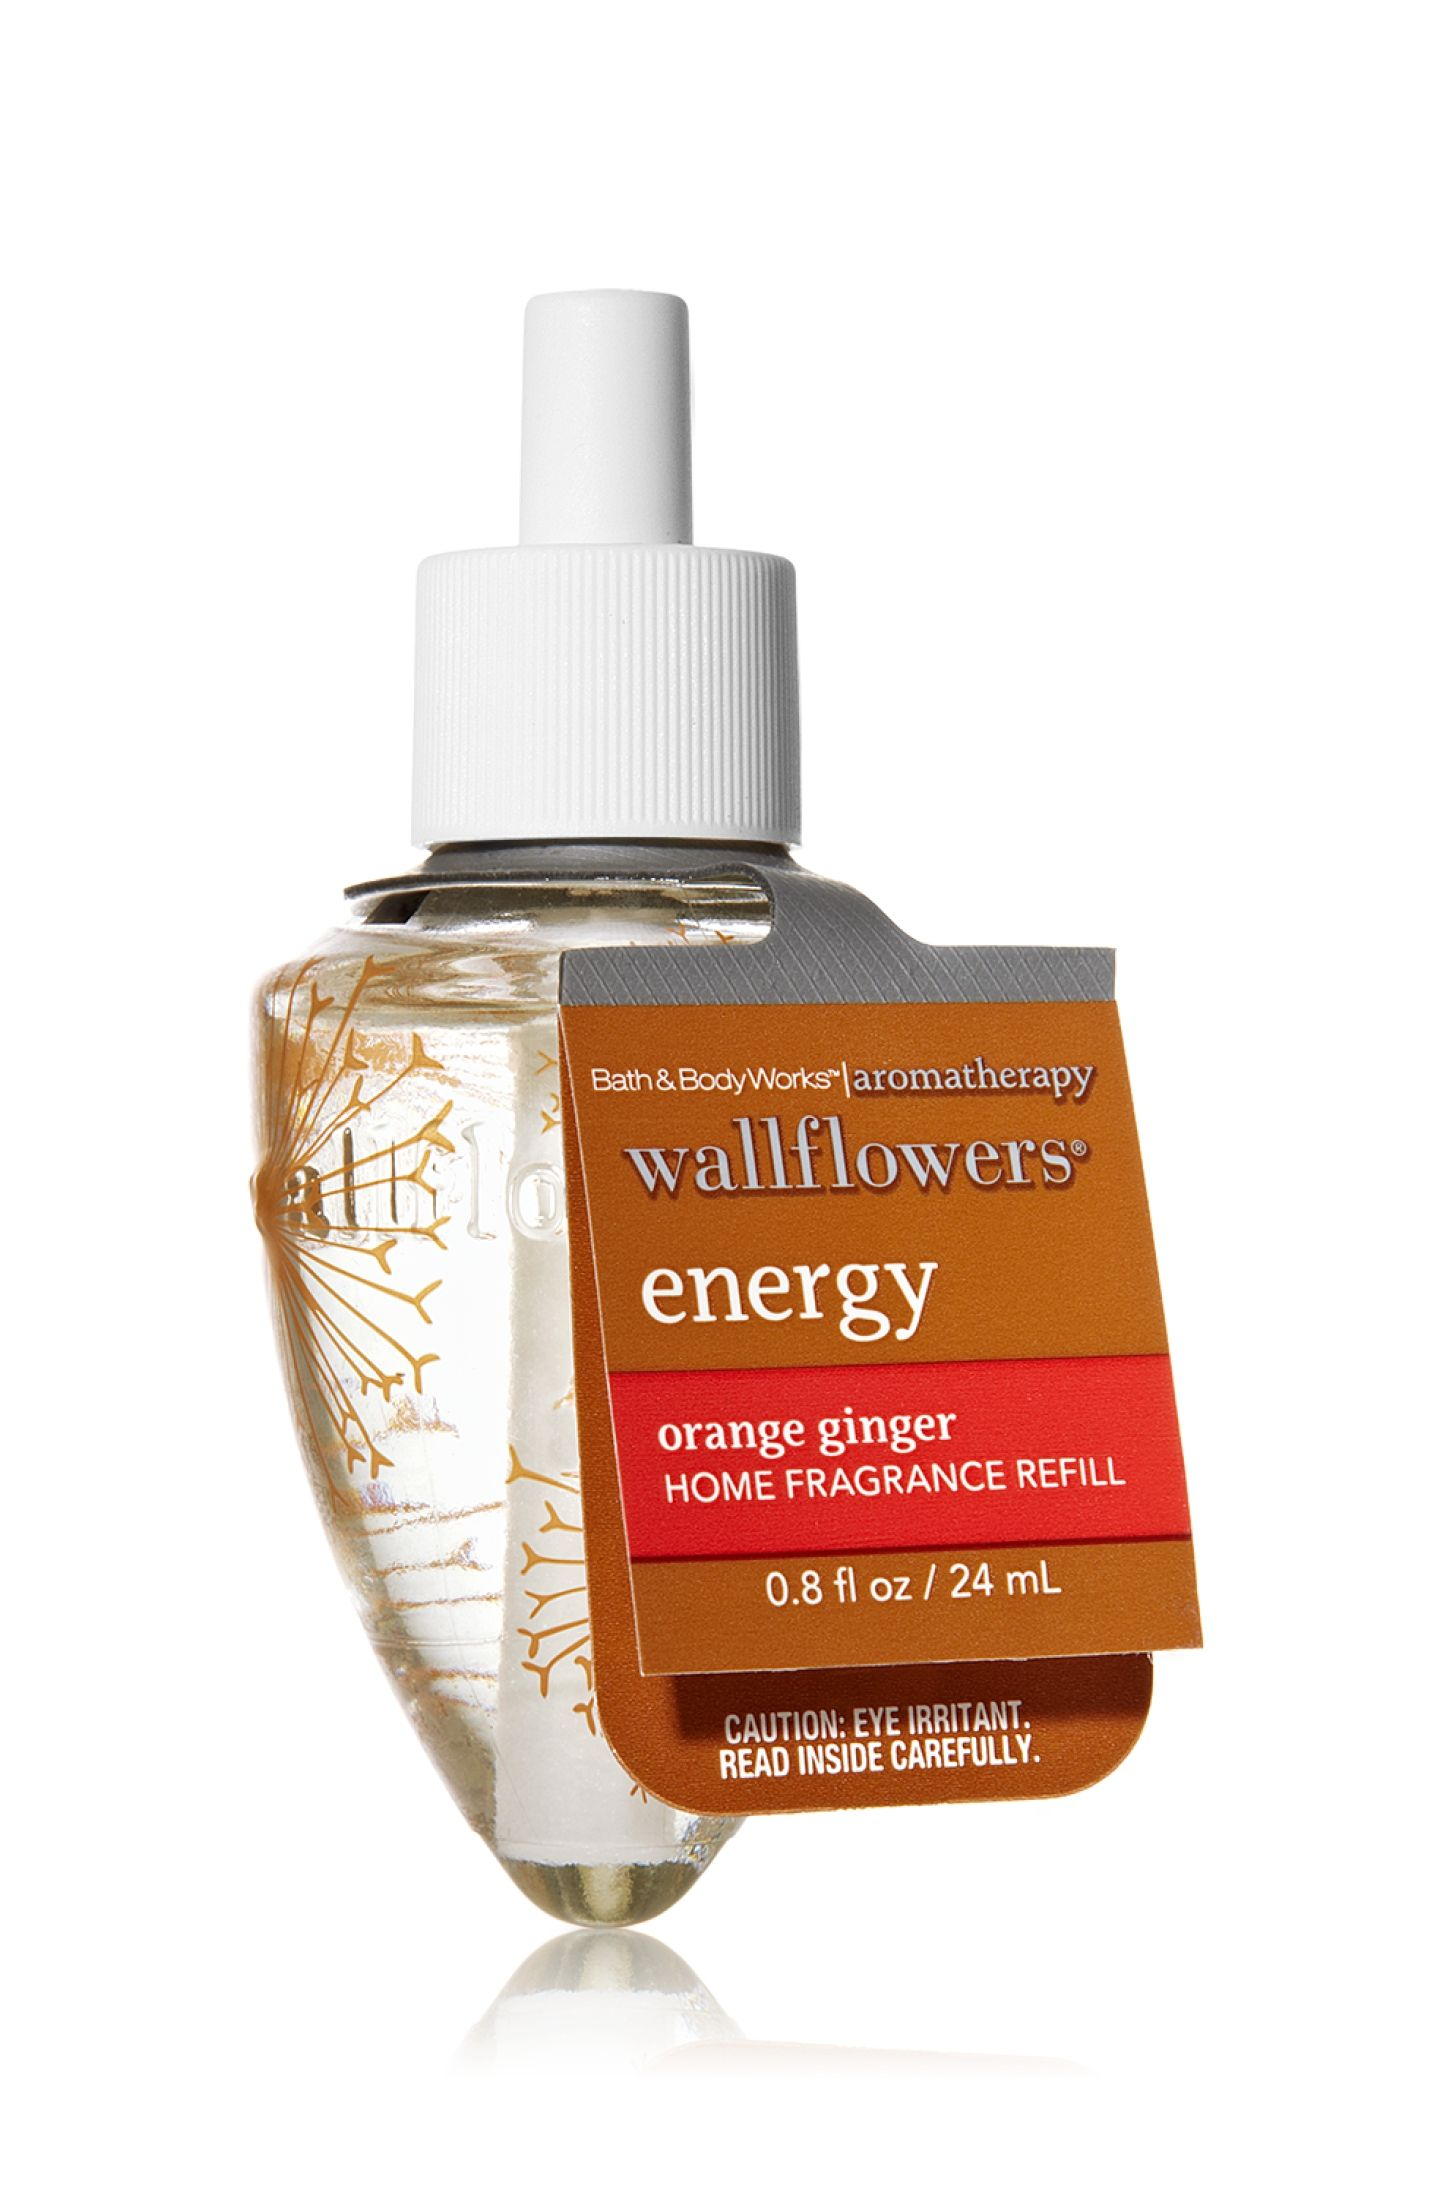 Orange Ginger Wallflowers Fragrance Bulbs Bath Body Works This Is One Of My Favorite Scents Bath And Body Works Bath And Body Fragrance